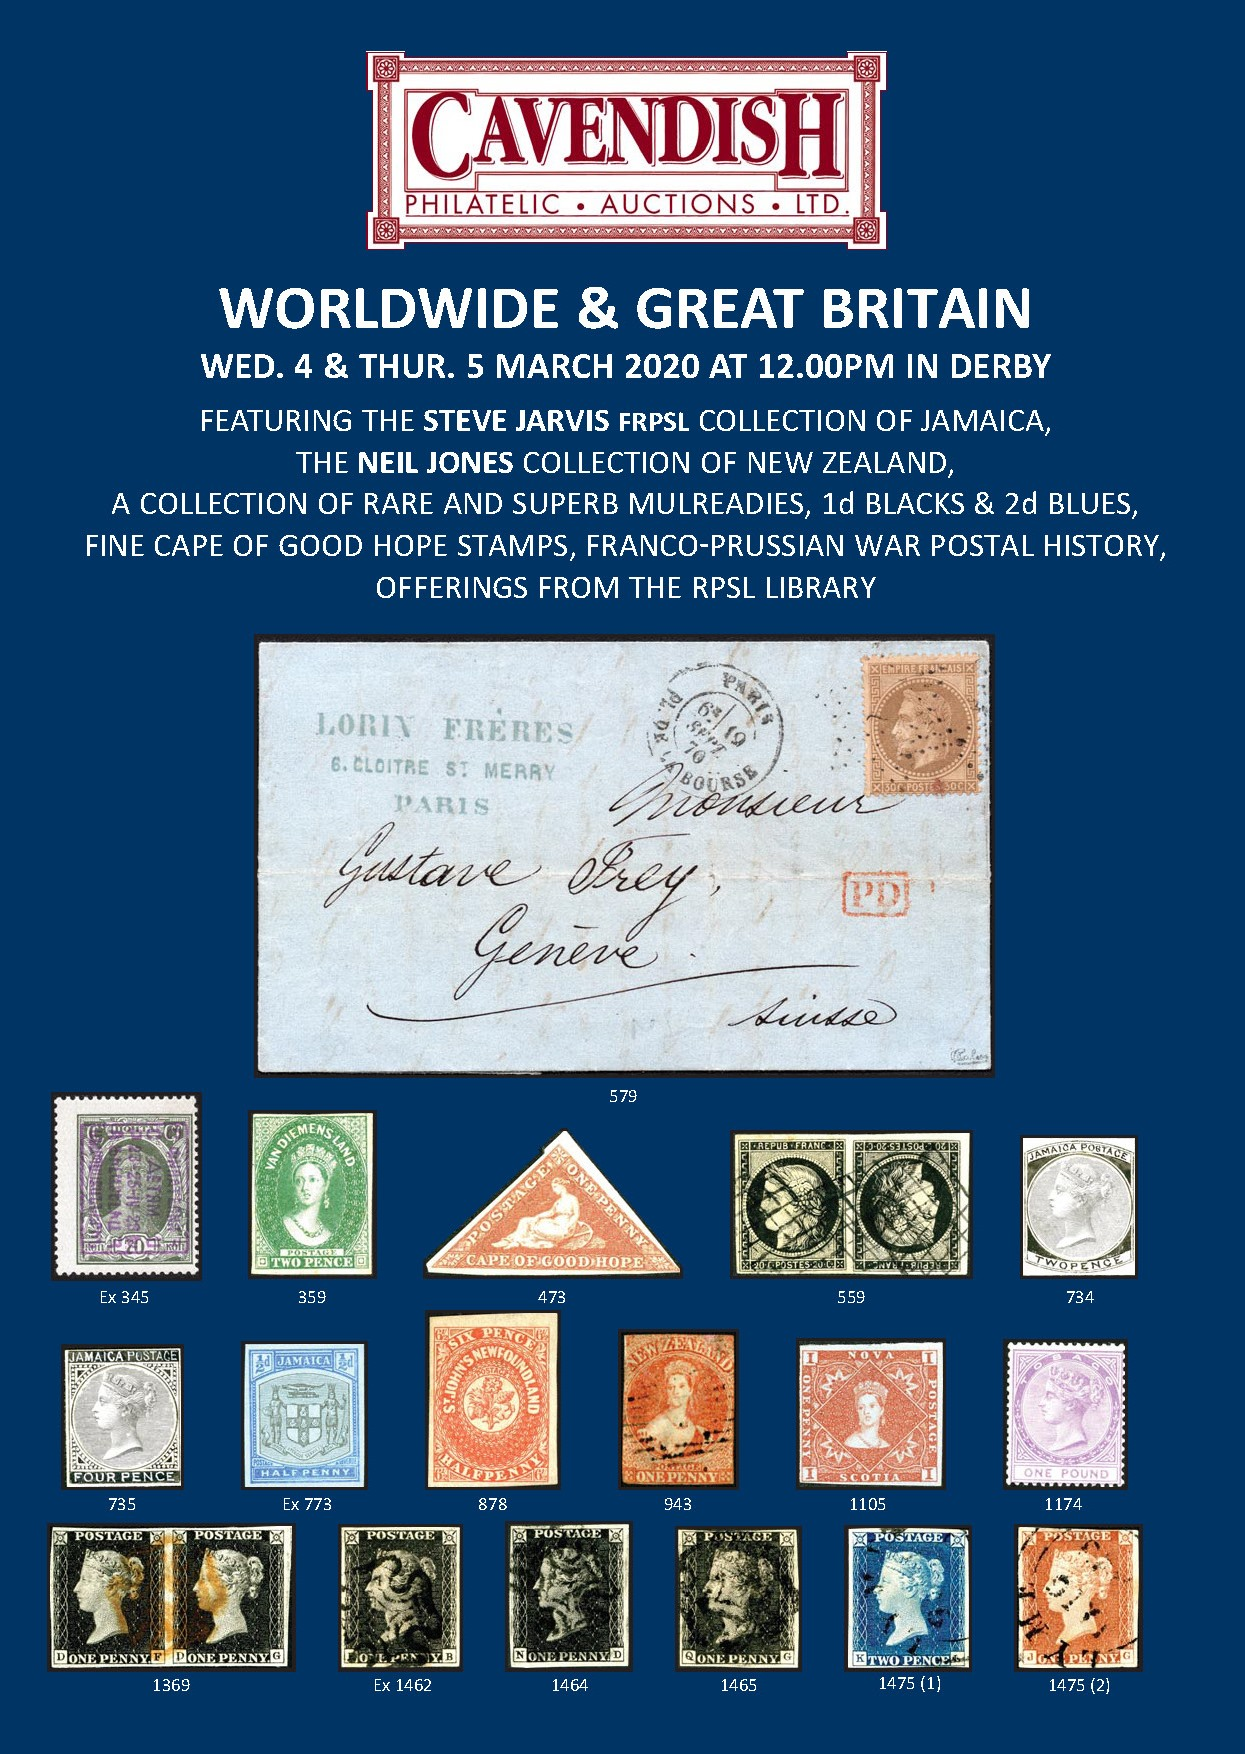 Worldwide & Great Britain - Mar 2020